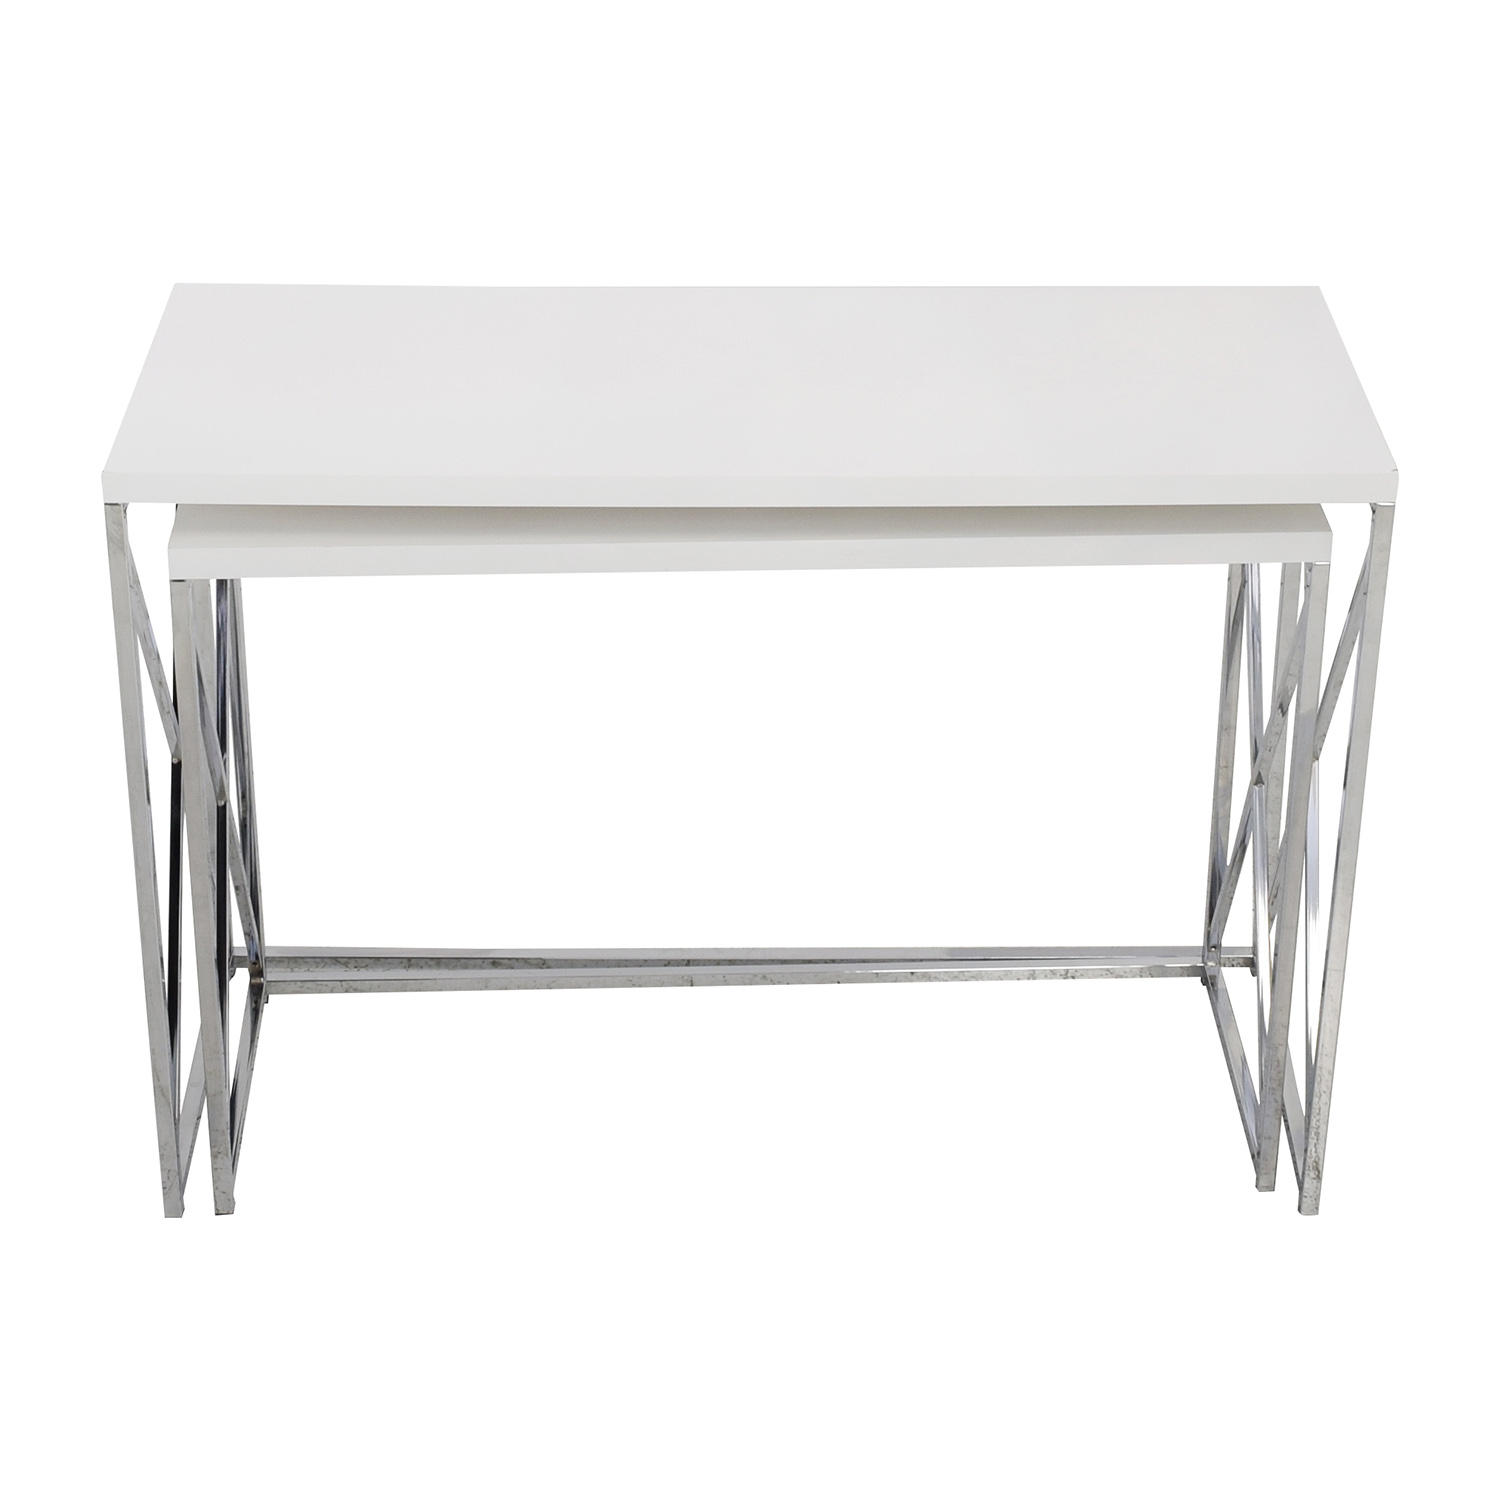 Monarch Specialties White and Chrome Nesting Console Tables / Accent Tables